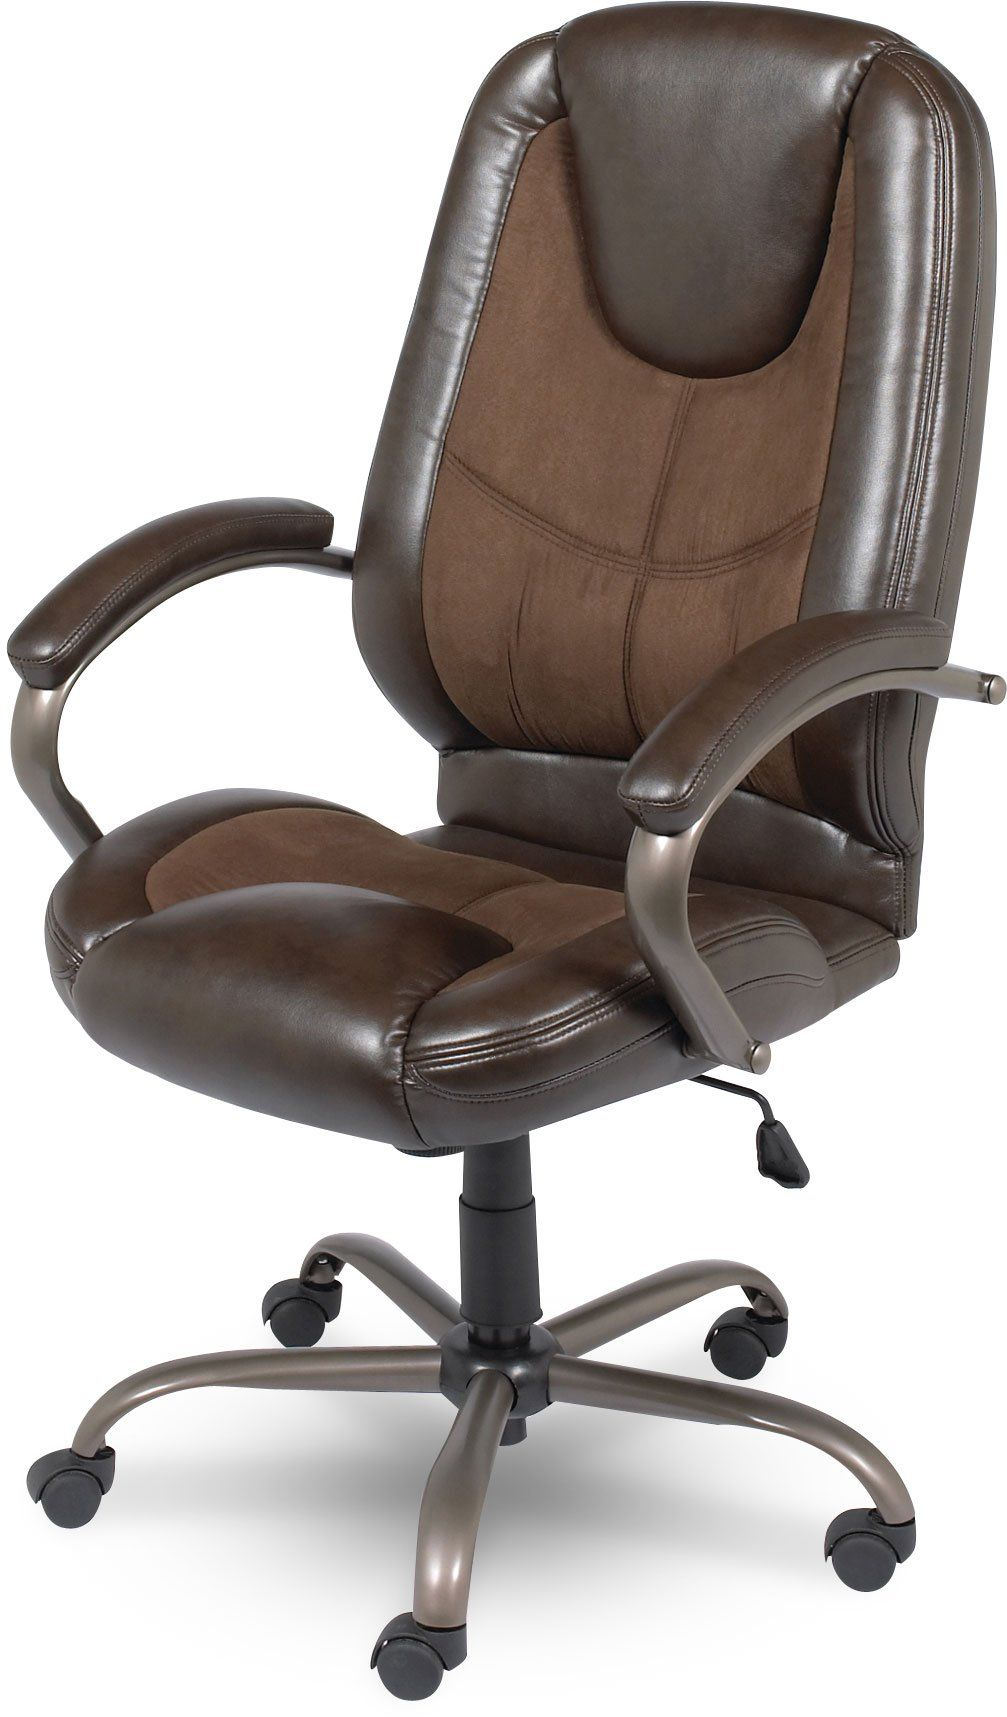 Groovy Leather Brown Office Chair Bentwood In 2019 Chair Creativecarmelina Interior Chair Design Creativecarmelinacom